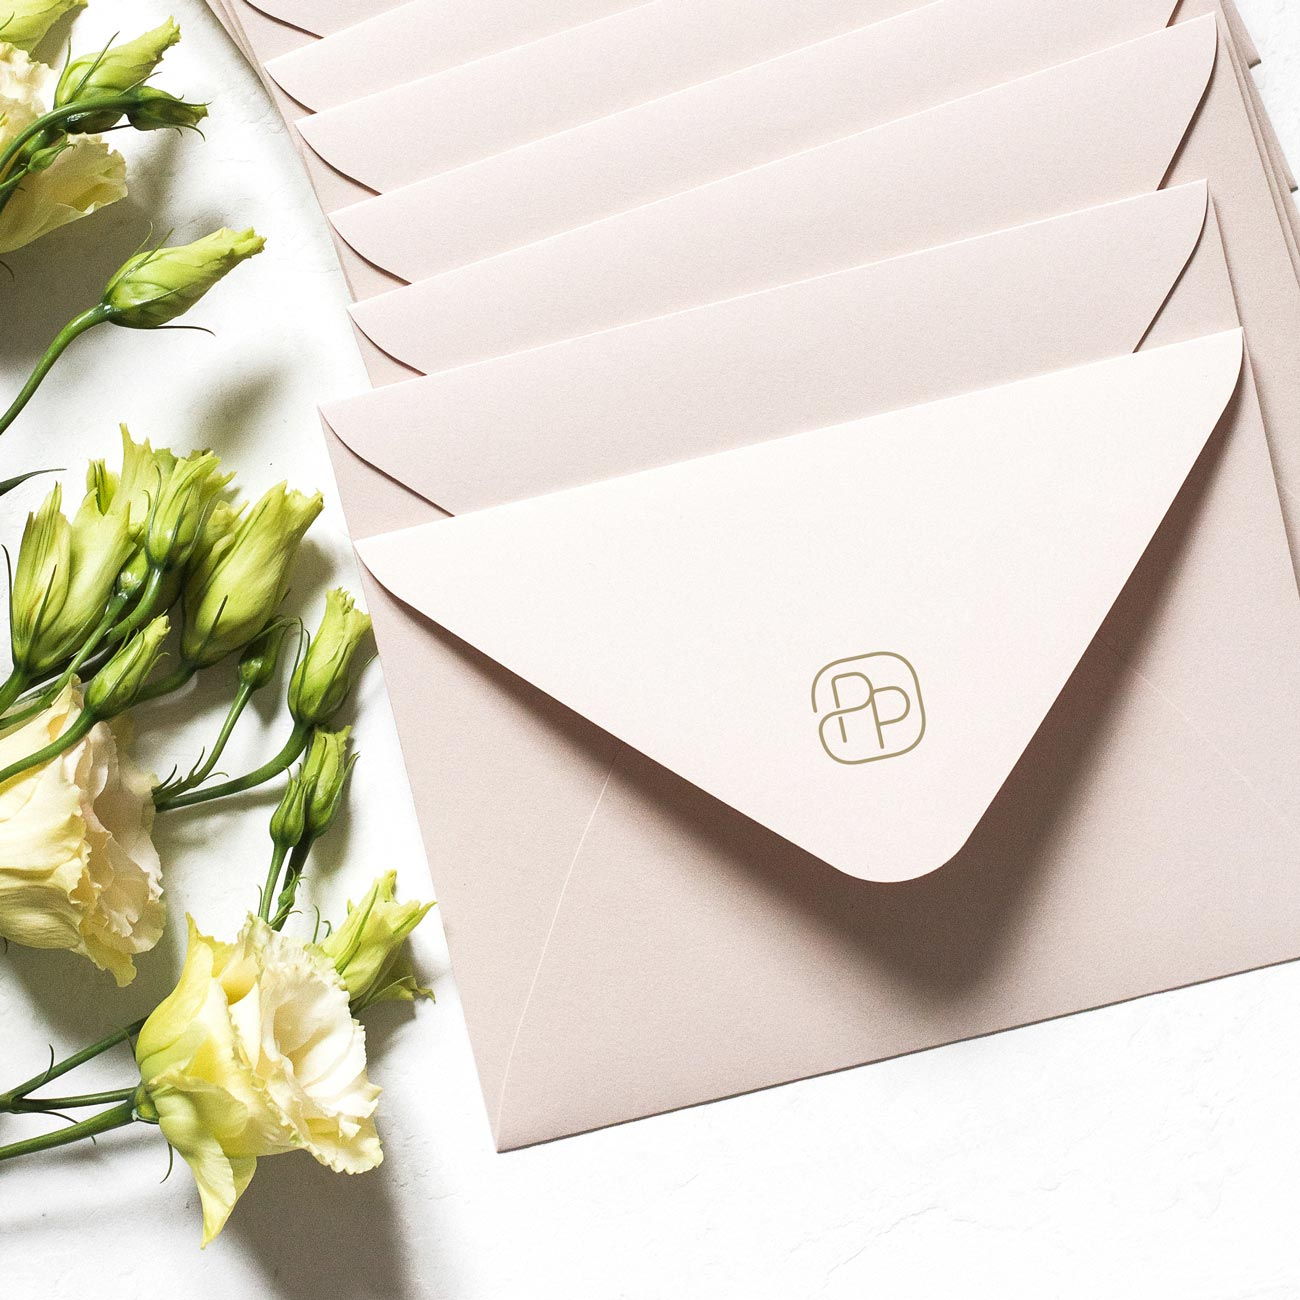 Pacific Place envelopes with gift cards